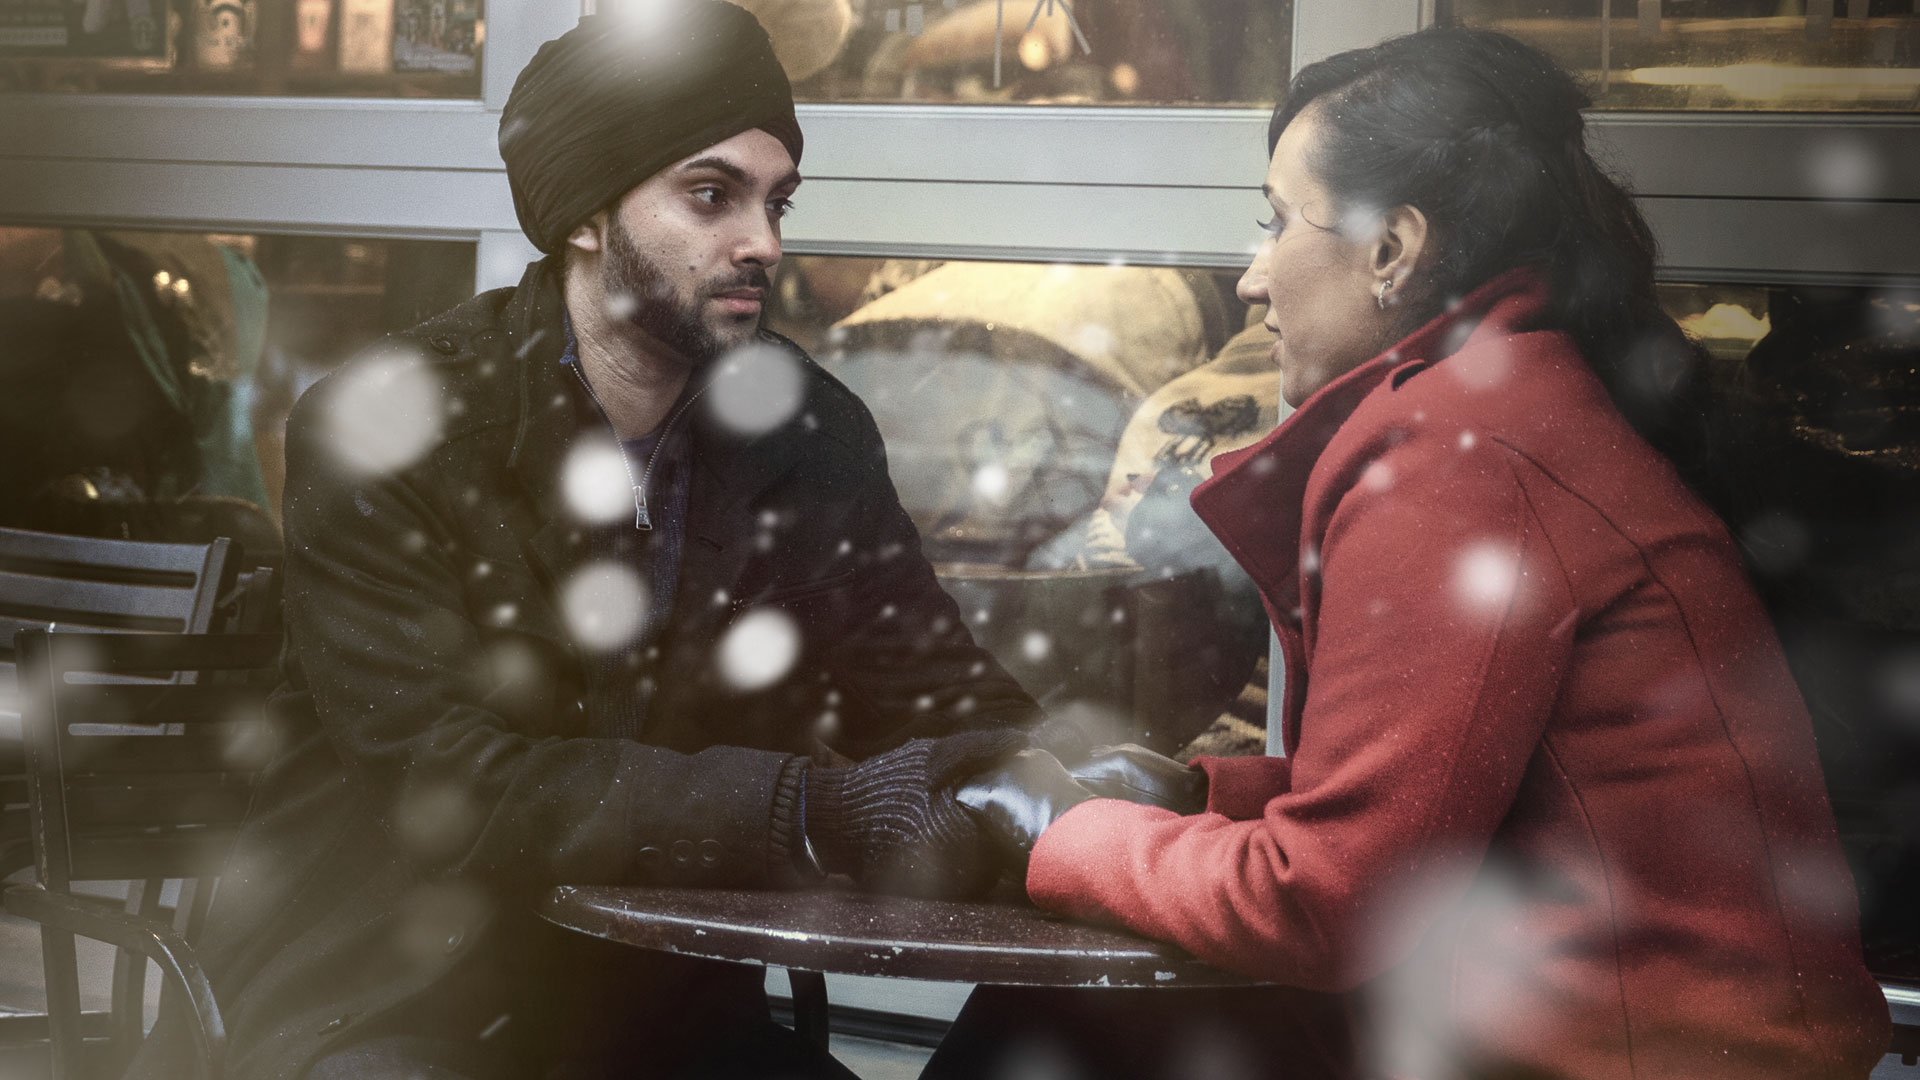 epicskypictures_falling_love_shoot_photography_wedding_photoshoot_fiance_holding_hands_coffee_shop_winter_love_couples_this_is_epic_ontario_site